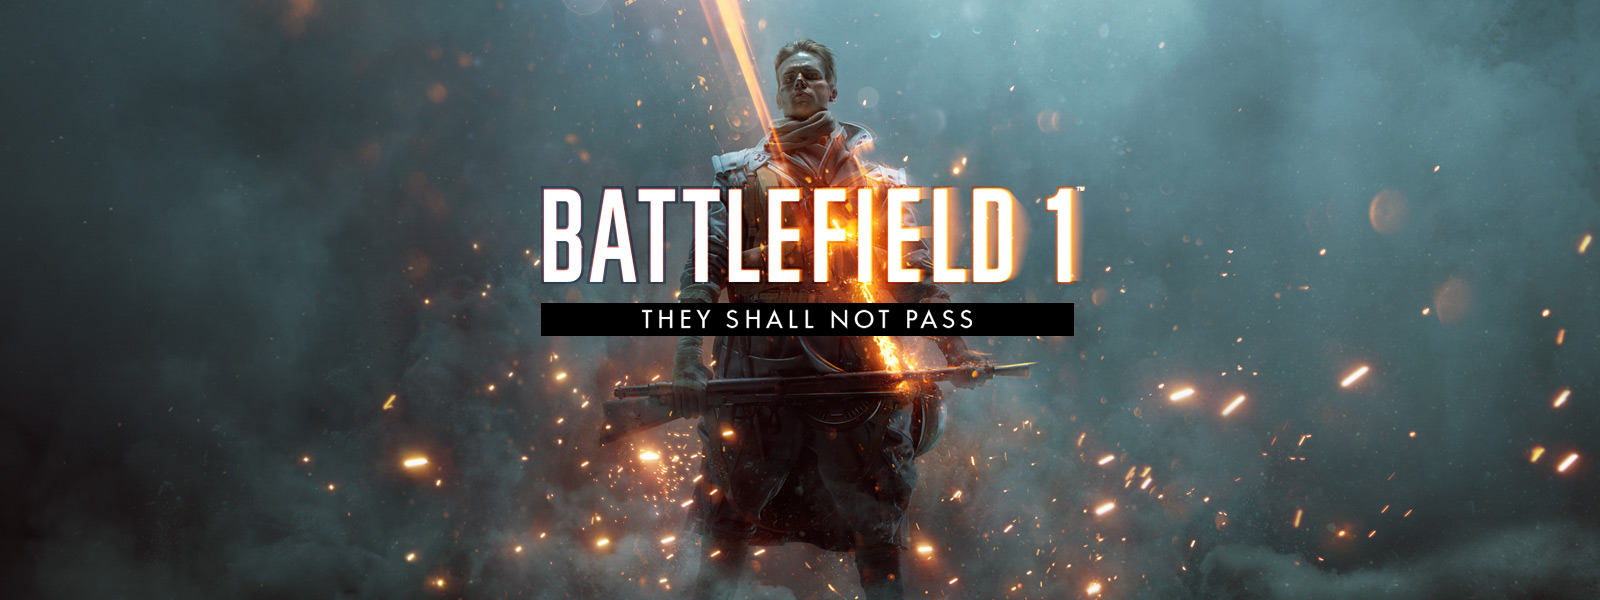 Battlefield 1 DLC - They shall not Pass